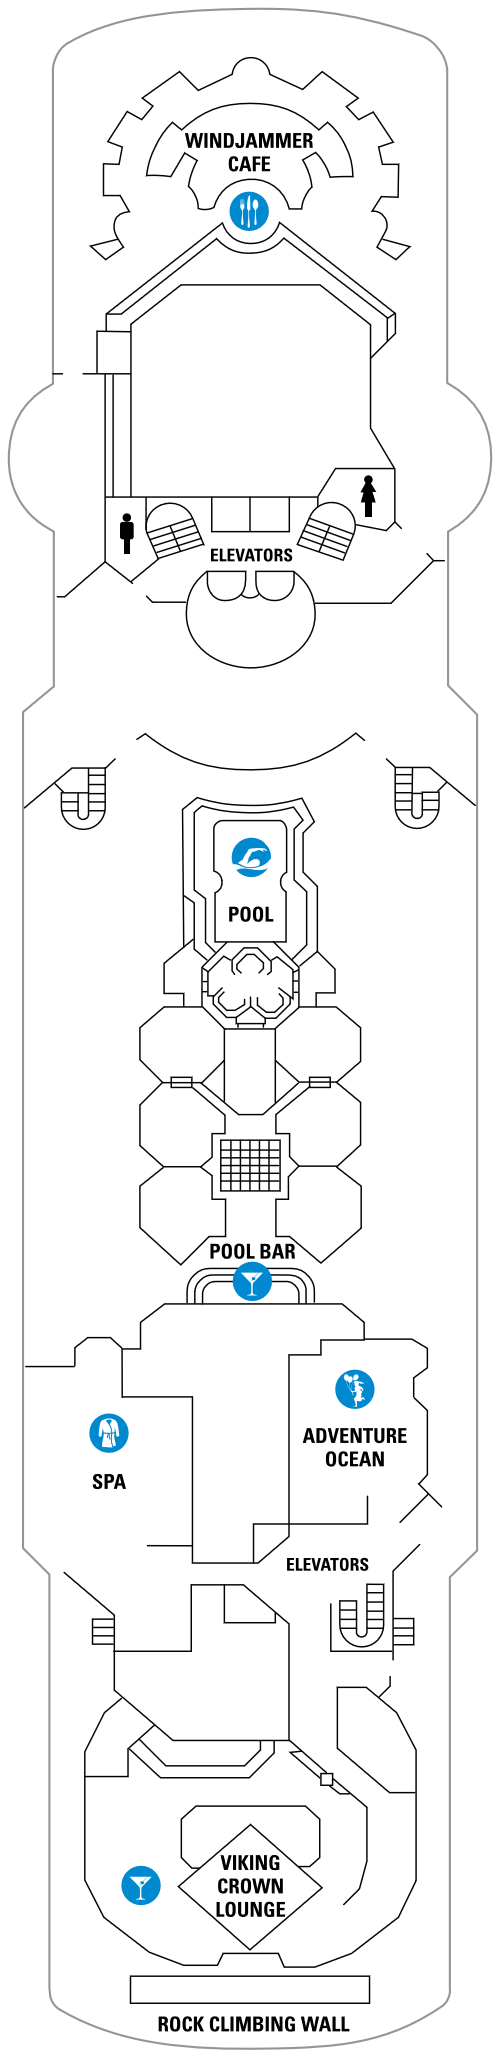 Empress Of The Seas Deck 10 layout